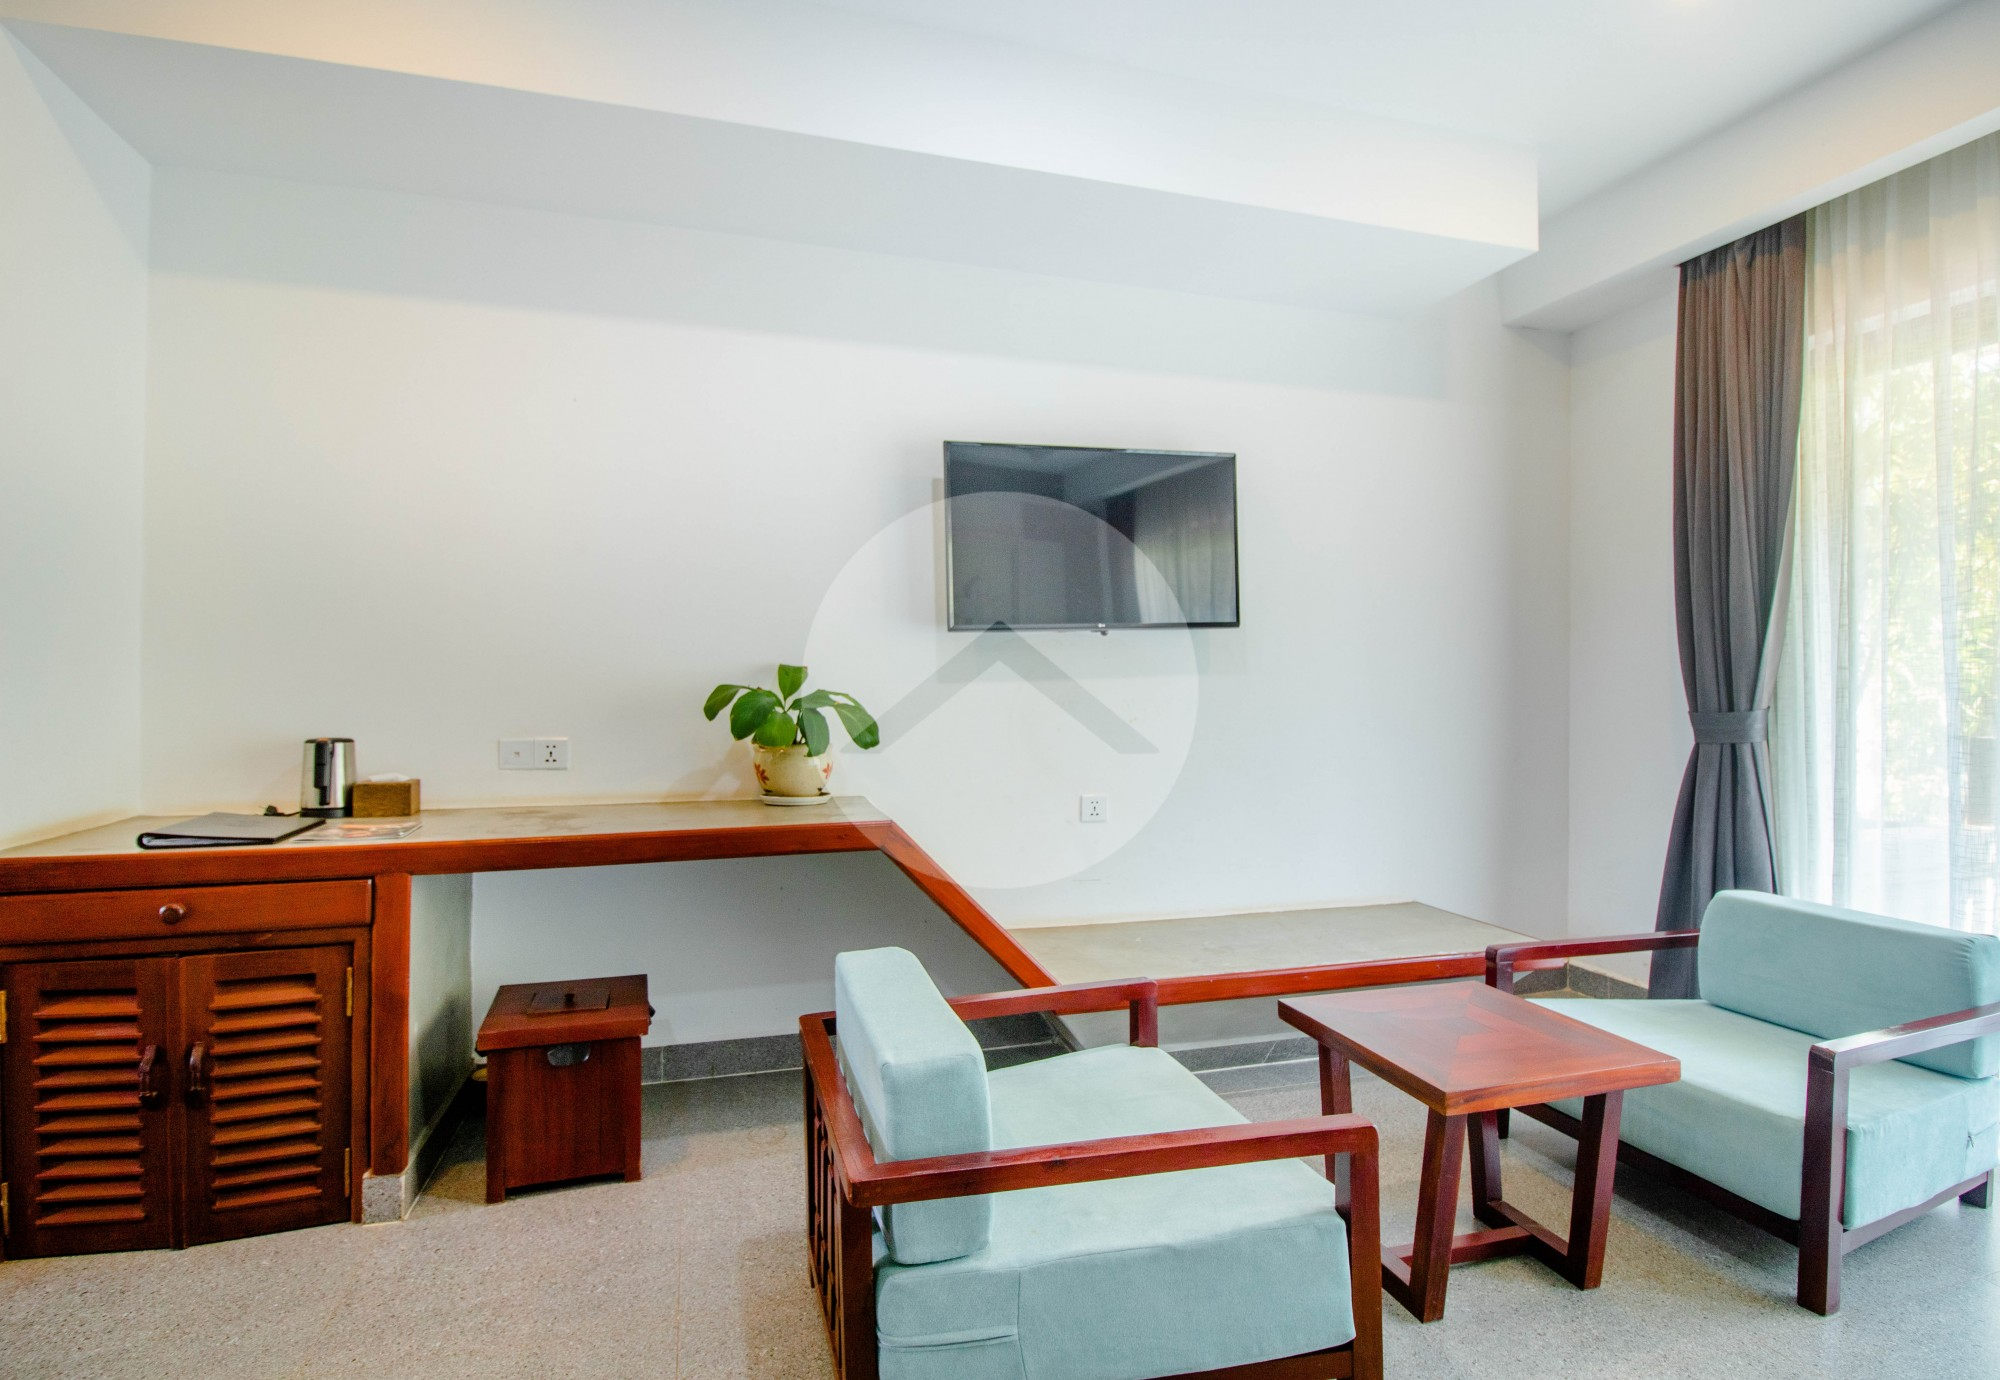 1 Bed Serviced Apartment For Rent - Svay Dangkum, Siem Reap